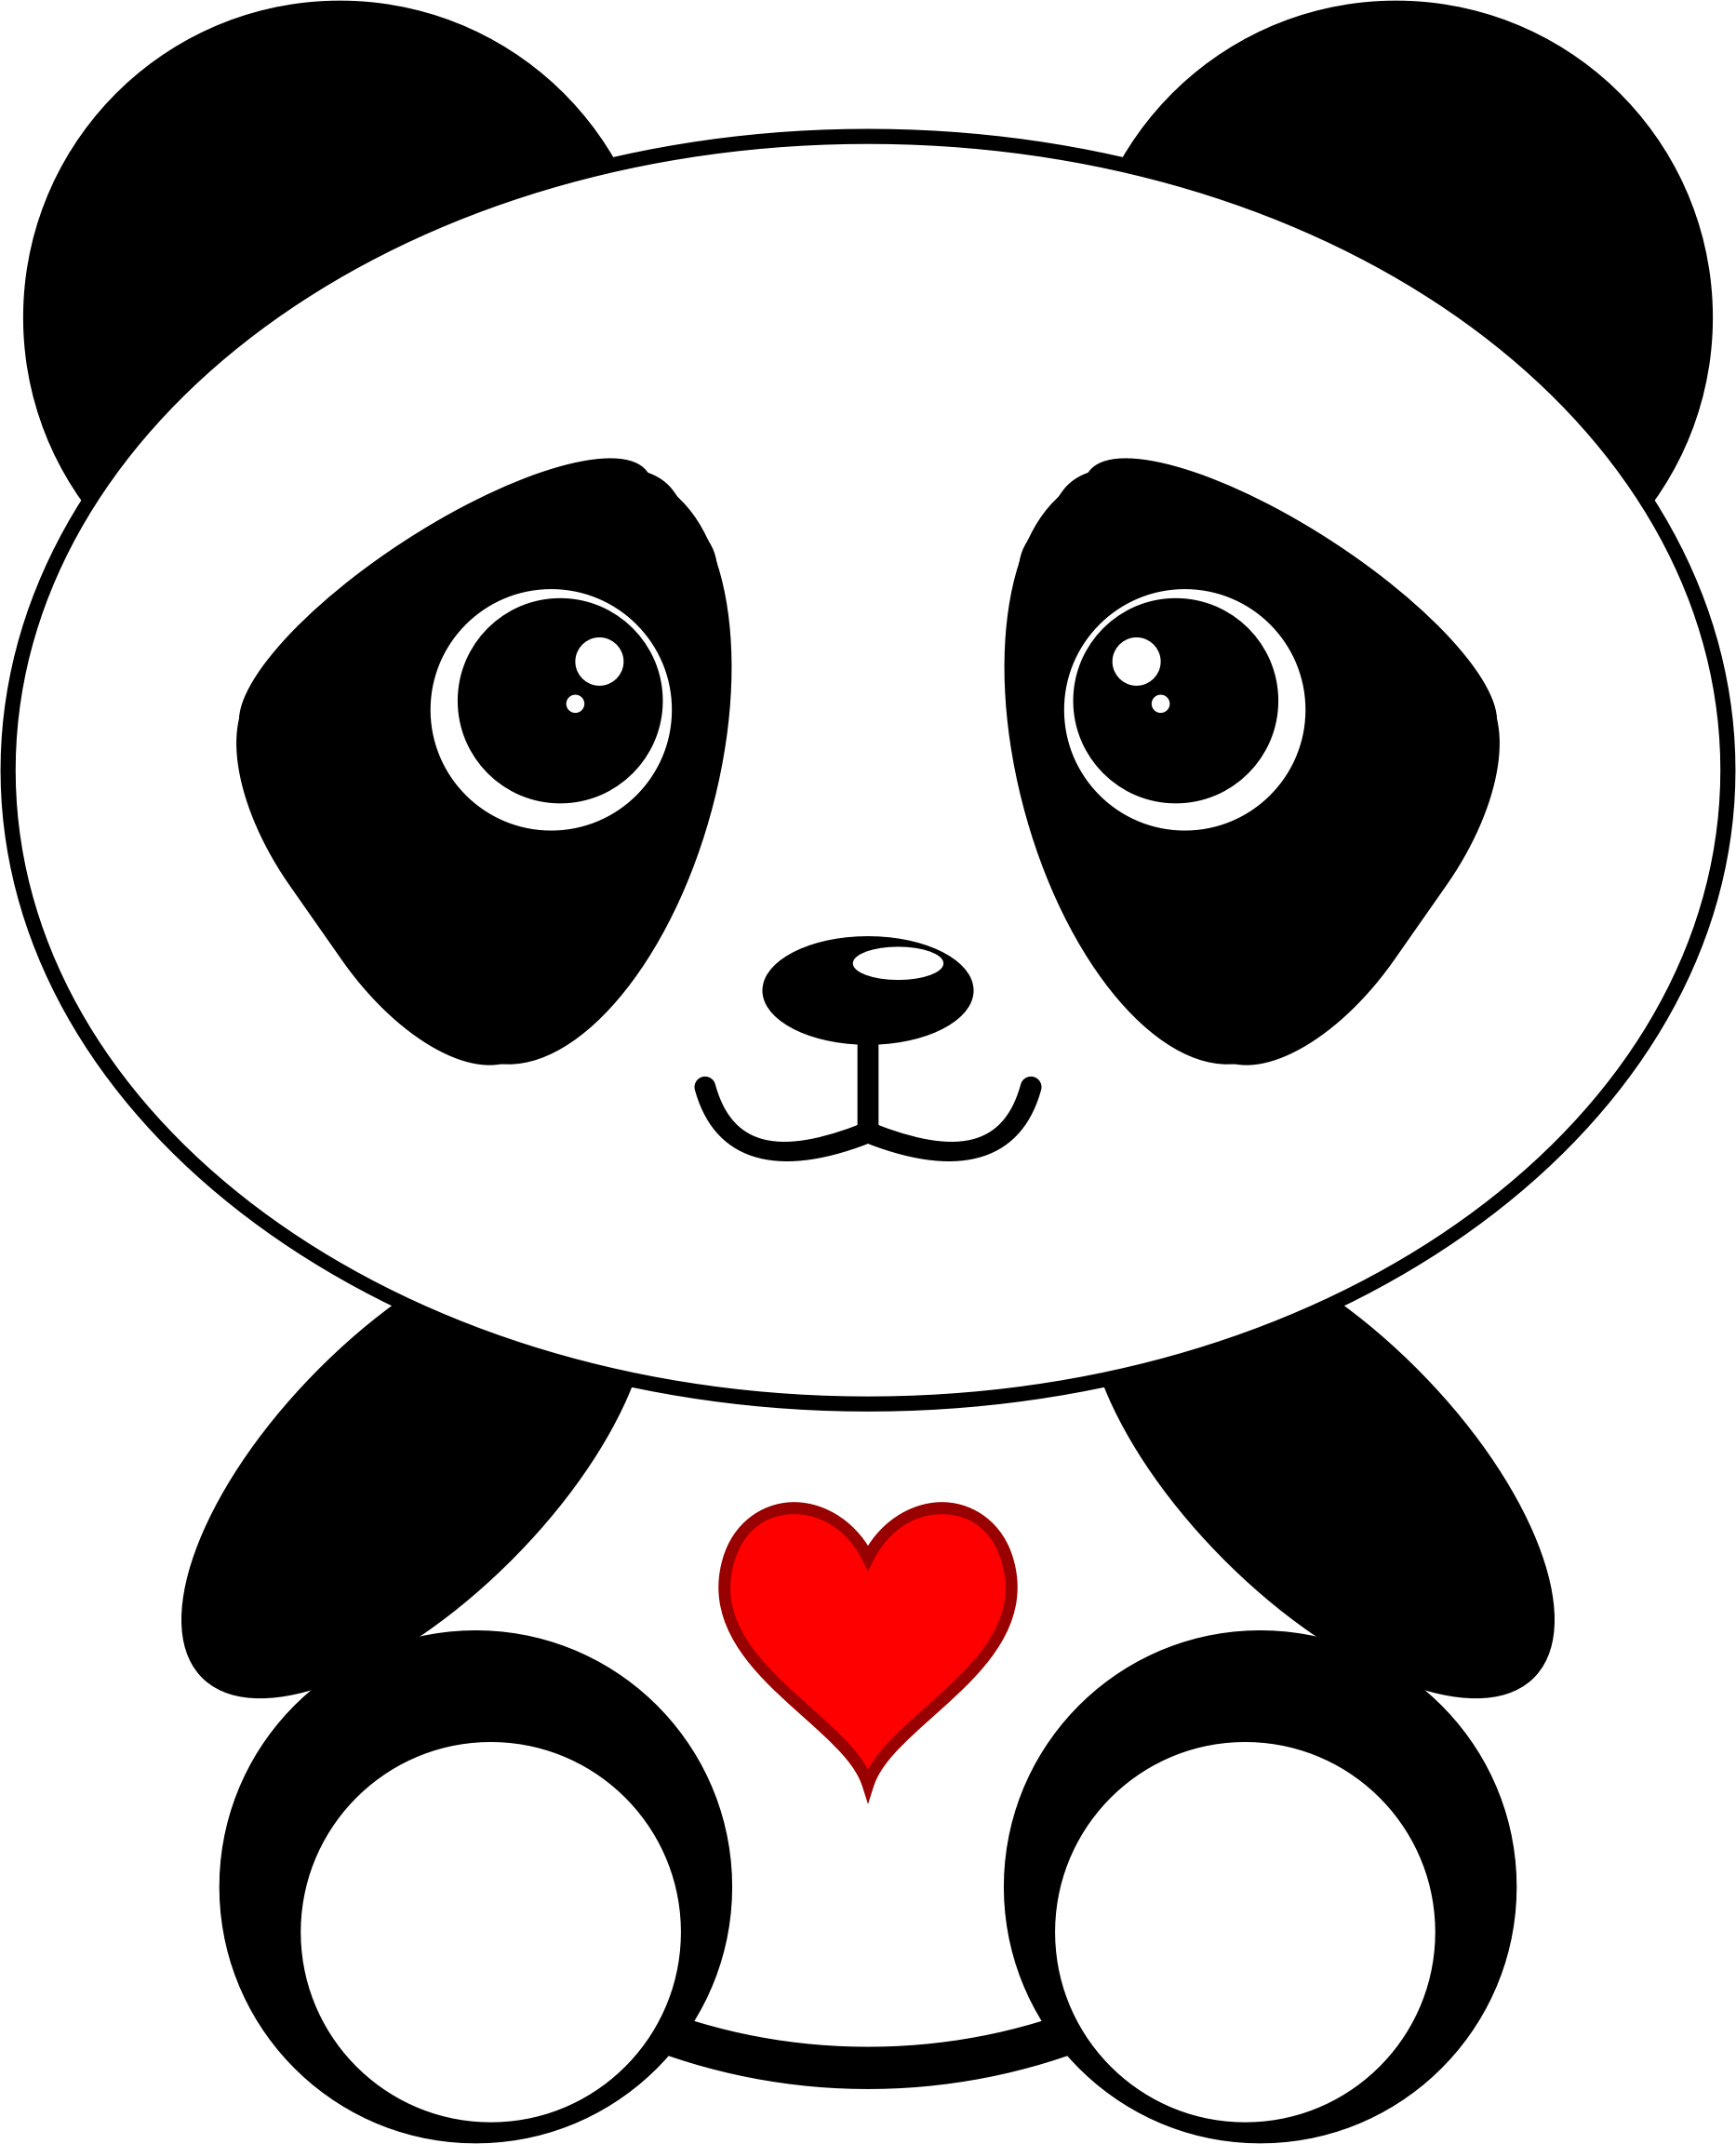 Panda clipart small. With a heart big